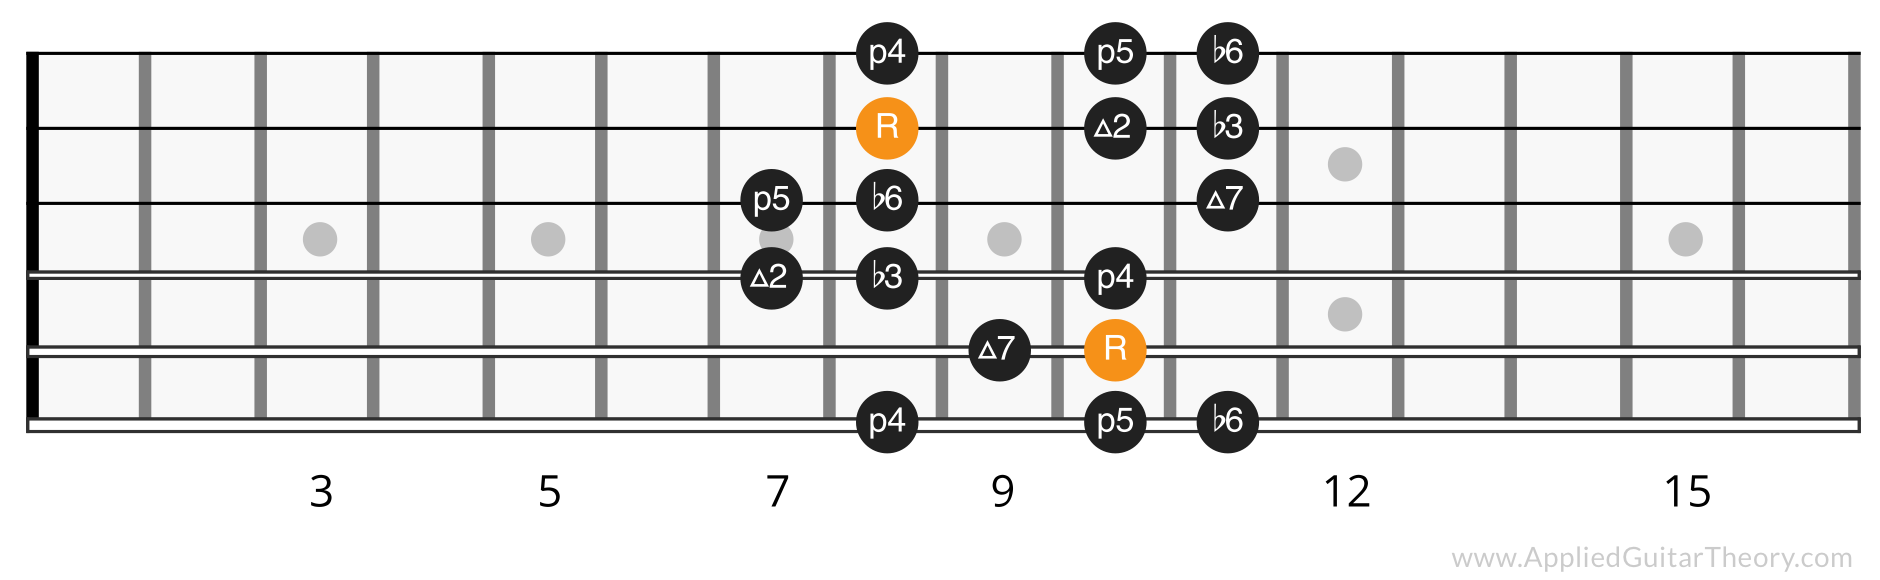 Harmonic Minor Scale position 3